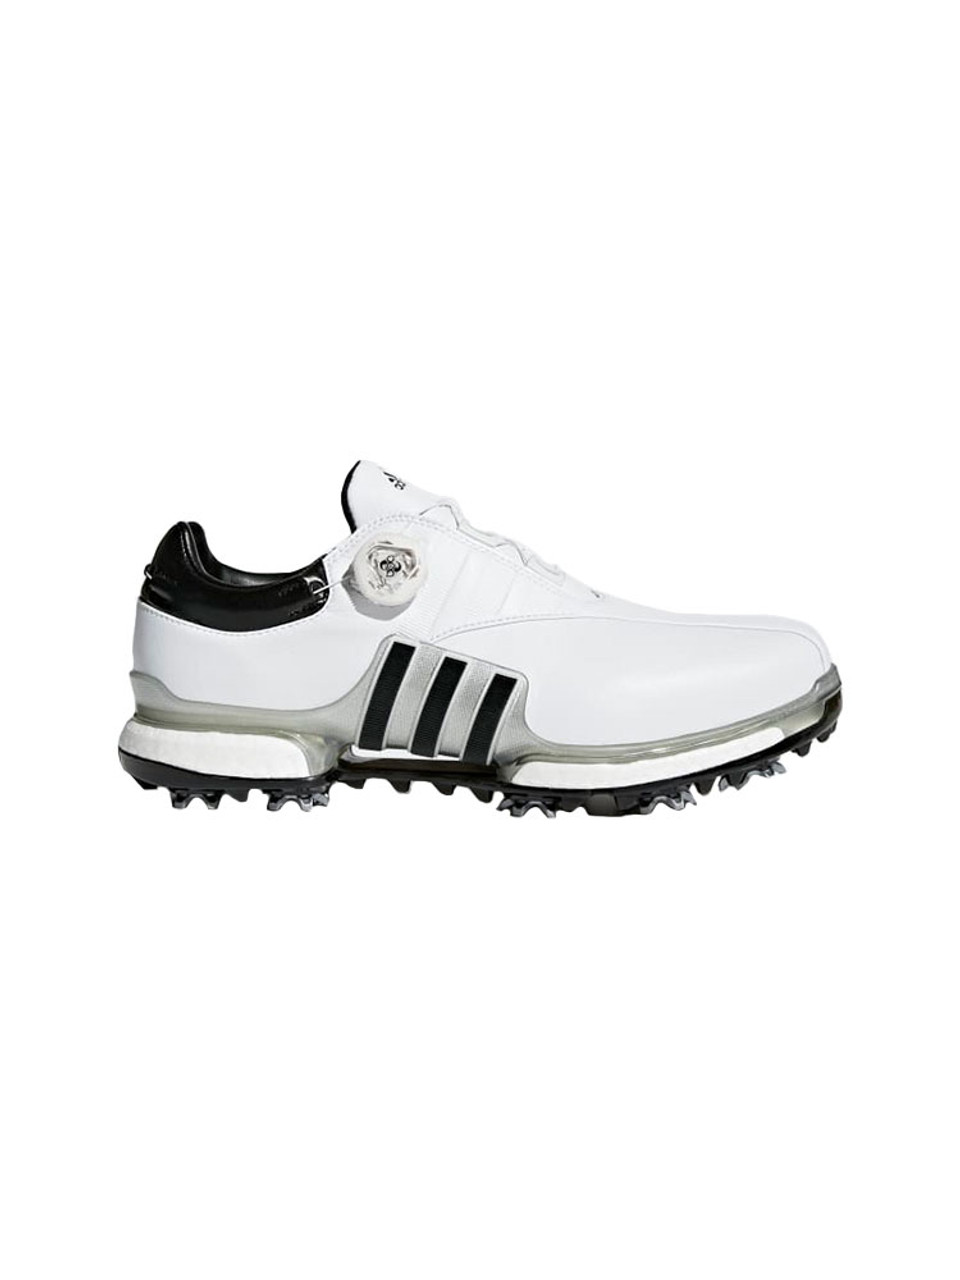 35cb6eb008b9 Adidas Tour360 Boost EQT BOA Golf Shoes - White Silver Black - Mens ...